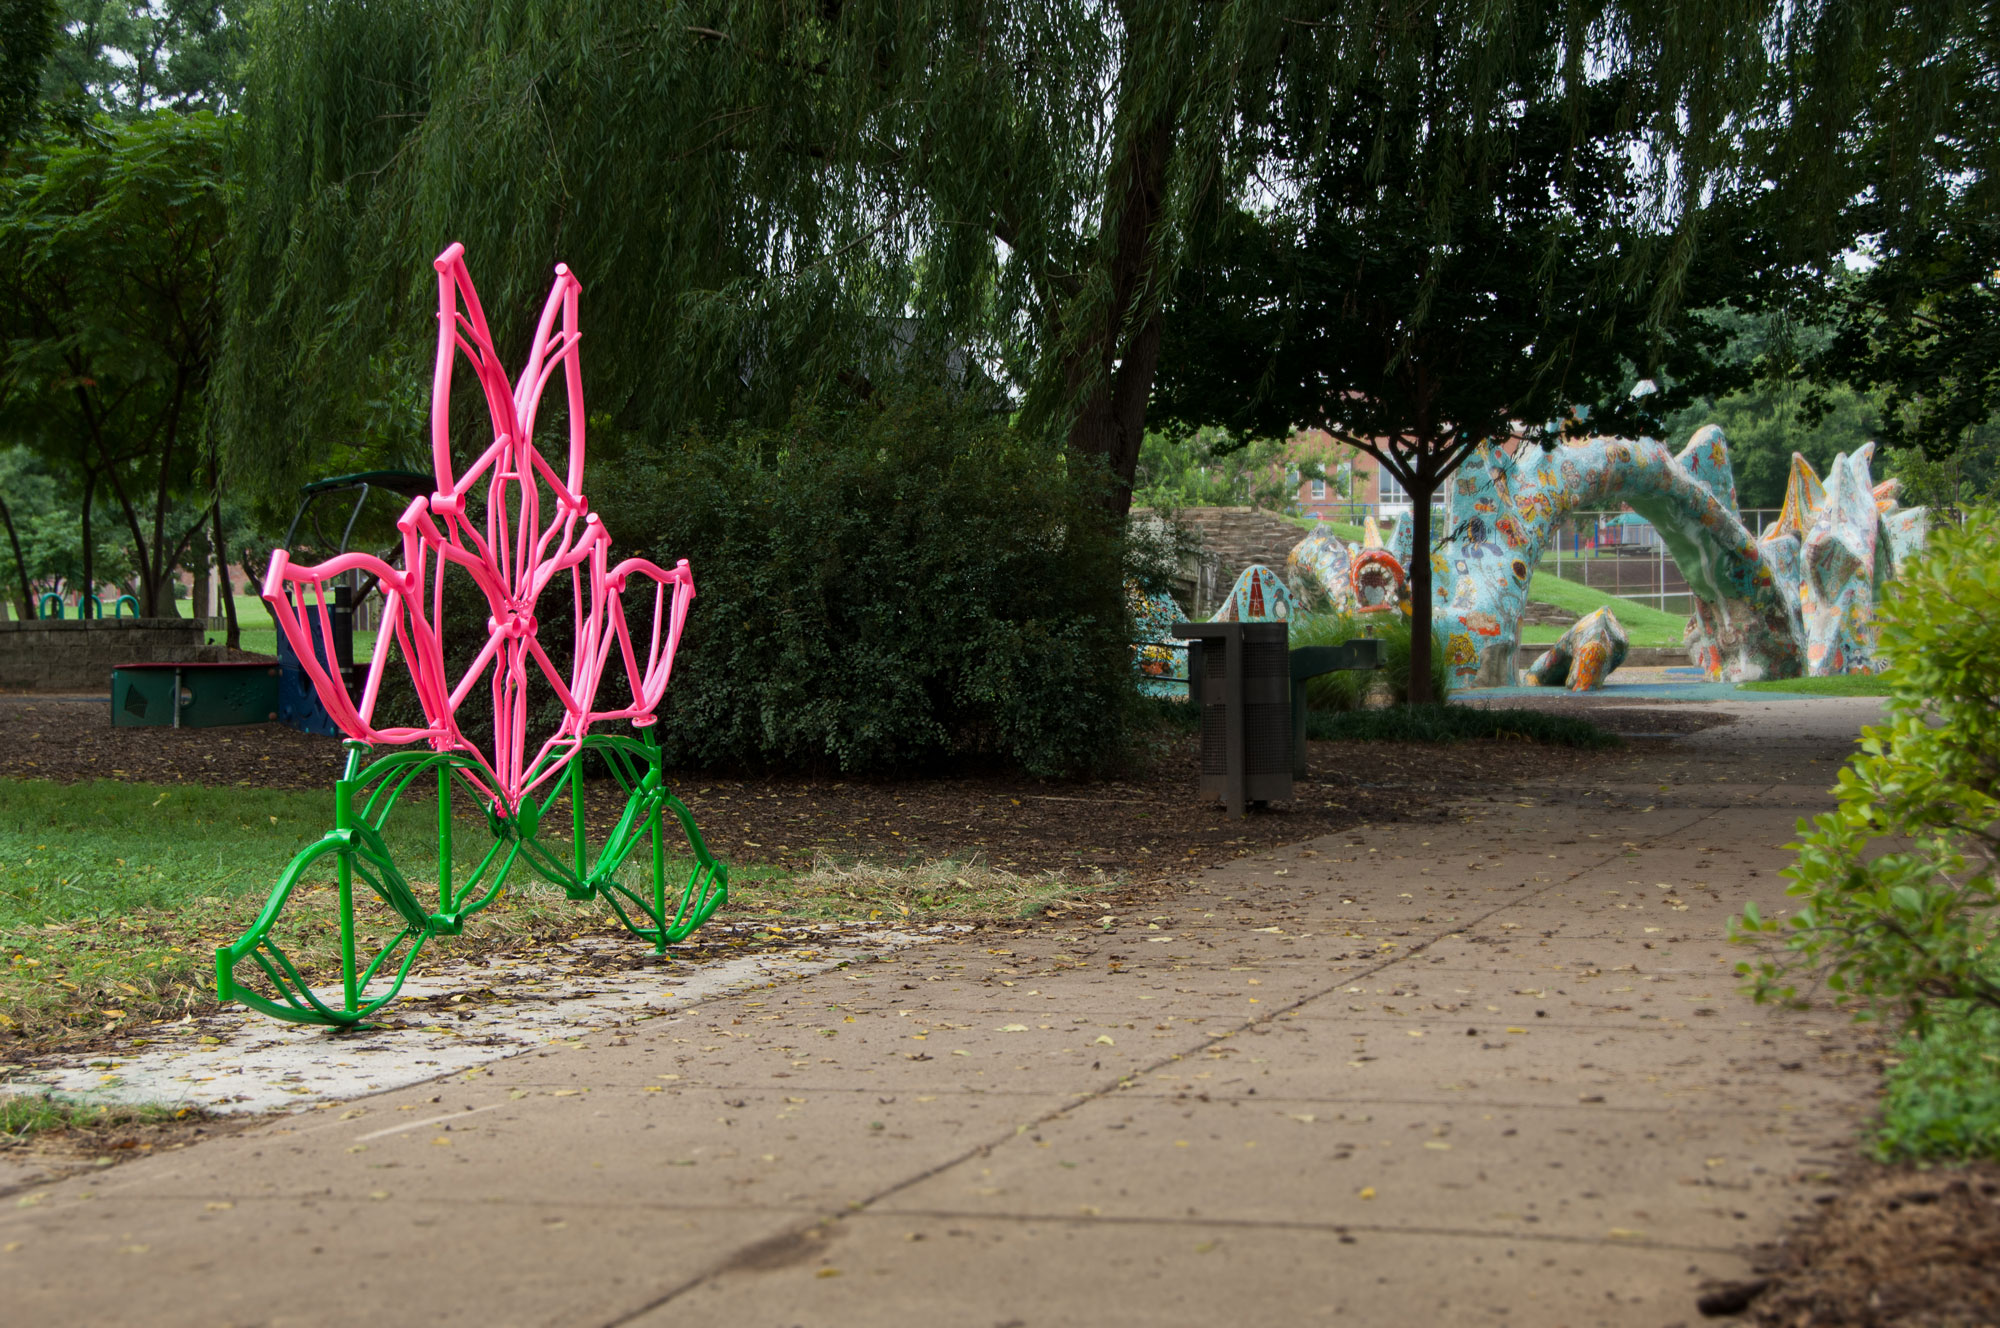 Original custom public art installation made of recycled/repurposed materials for a public park in downtown Nashville, TN